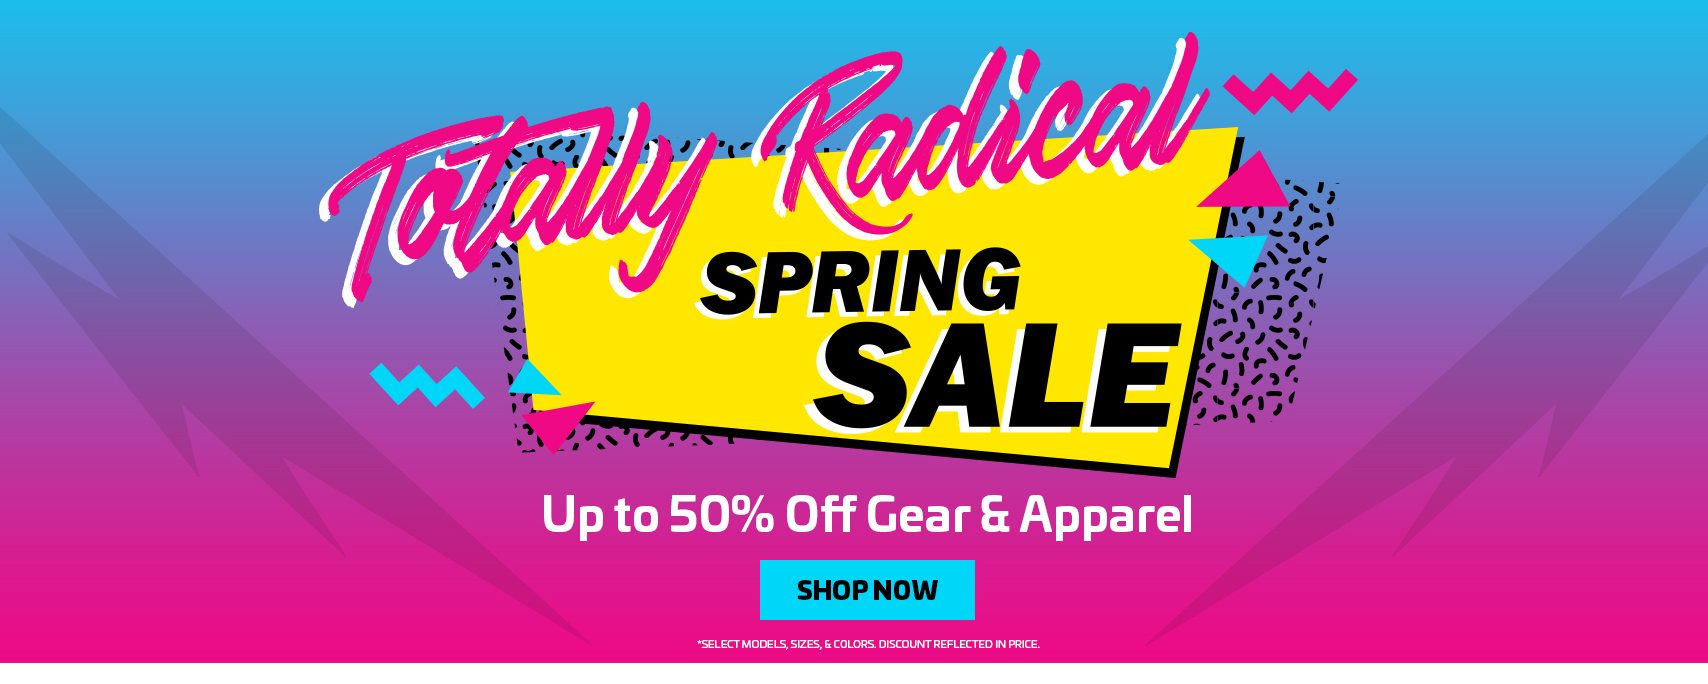 SHOP THE TOTALLY RADICAL SPRING SALE